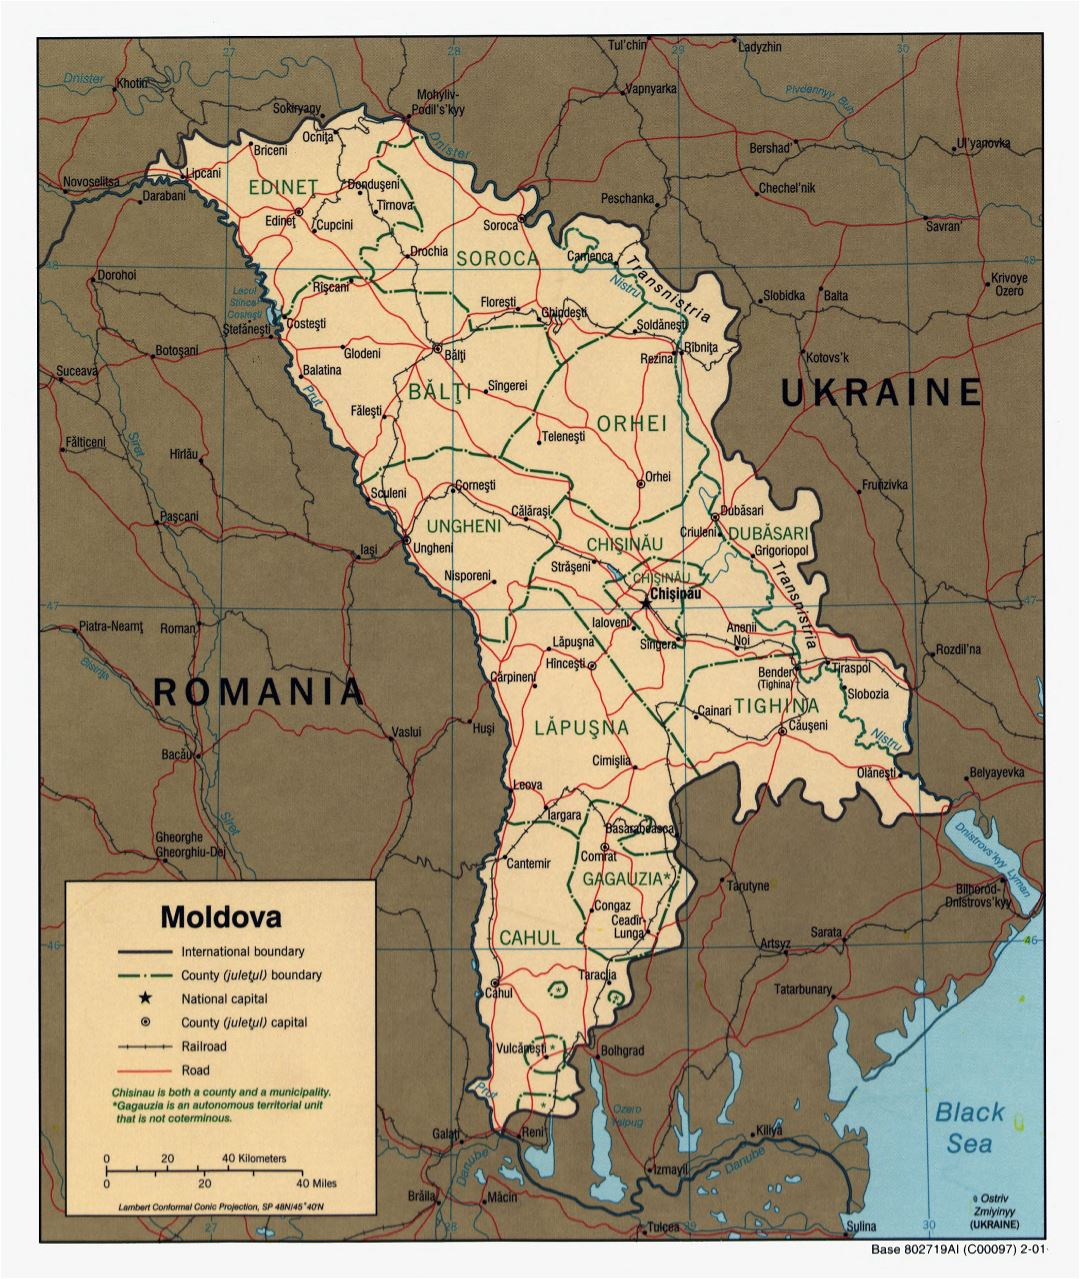 Large scale political and administrative map of Moldova with roads, railroads and major cities - 2001